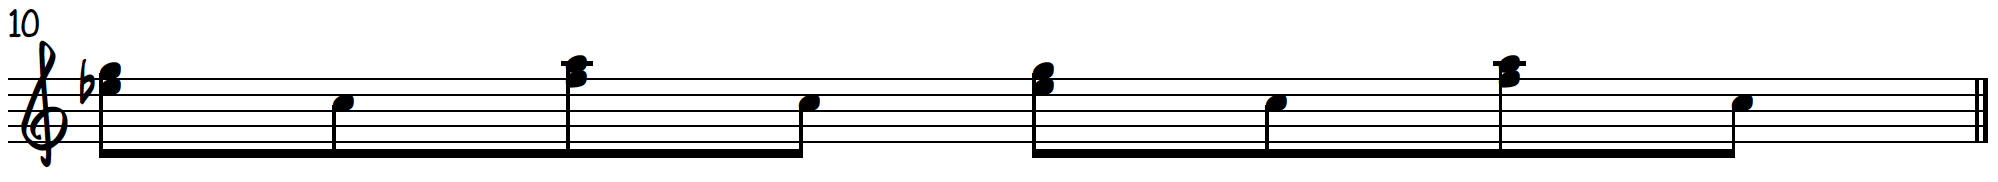 Grip 3 8th note exercise to practice blues piano licks